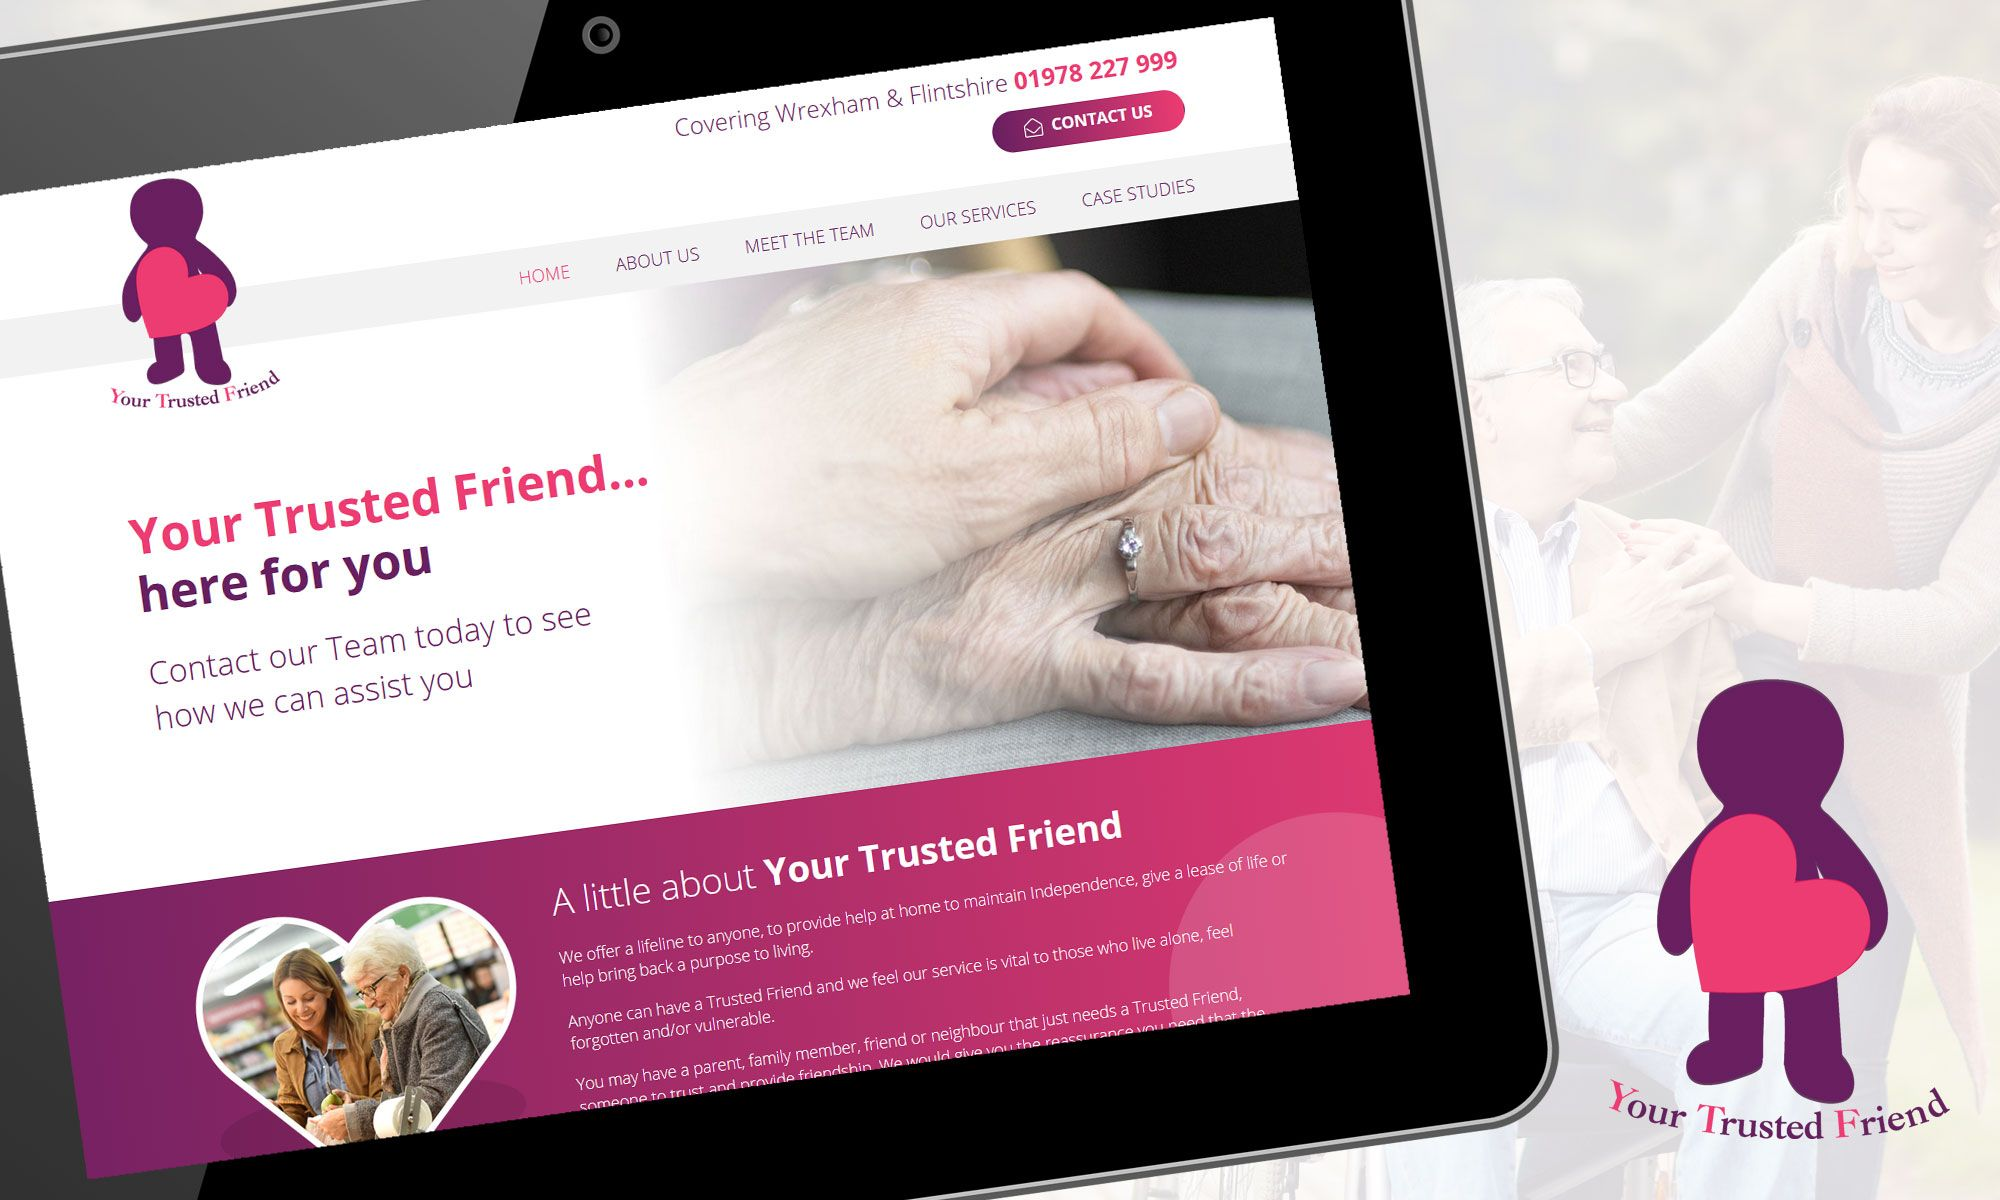 Your Trusted Friend website